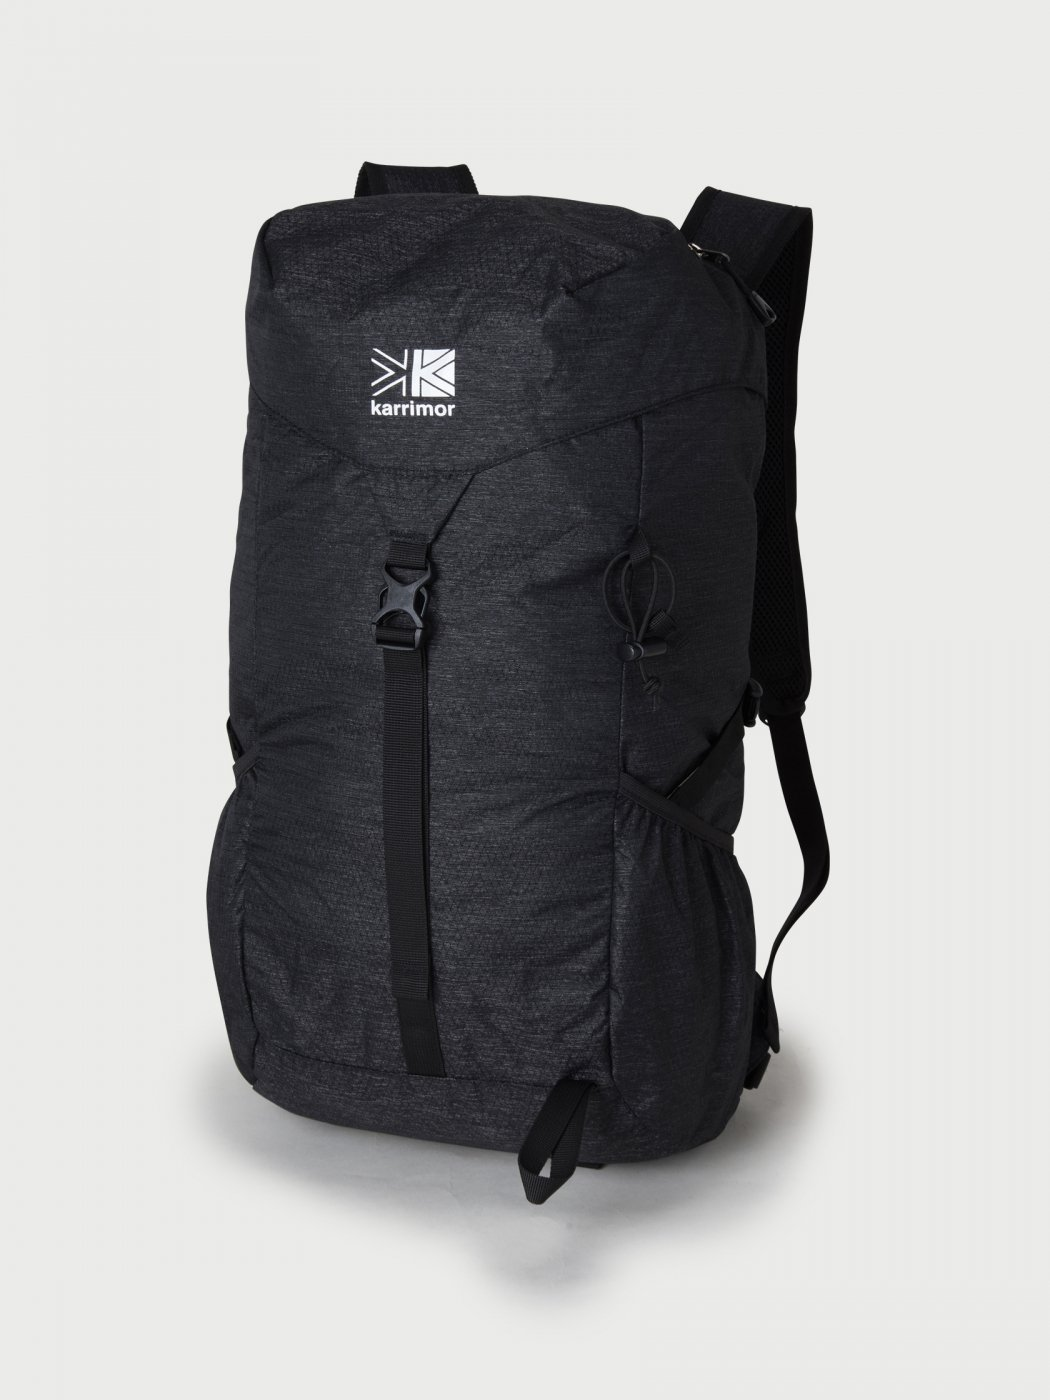 <img class='new_mark_img1' src='https://img.shop-pro.jp/img/new/icons5.gif' style='border:none;display:inline;margin:0px;padding:0px;width:auto;' />Karrimor-カリマー-mars top load 27-BLACK-